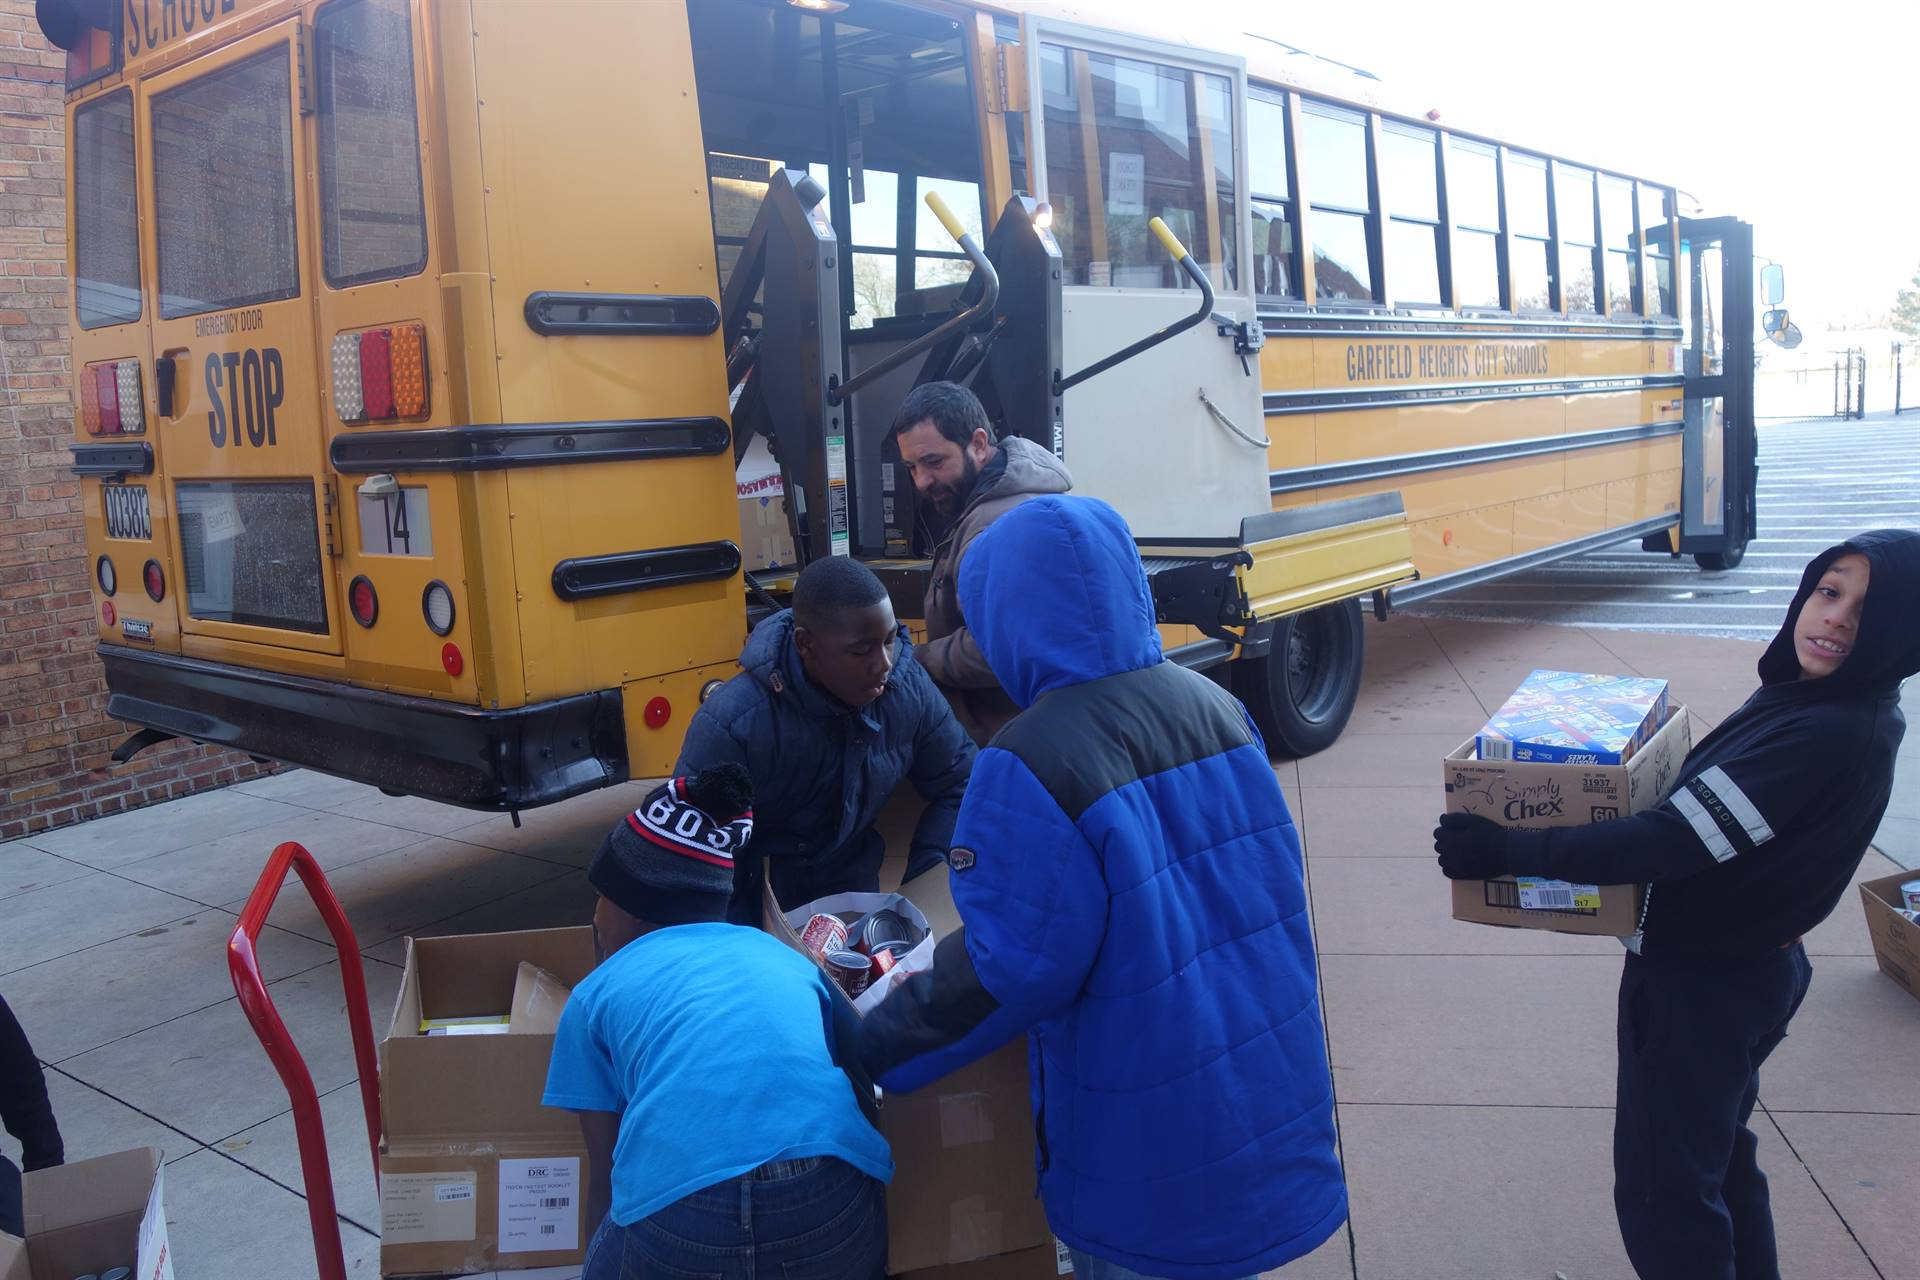 students and staff loading boxes onto a school bus